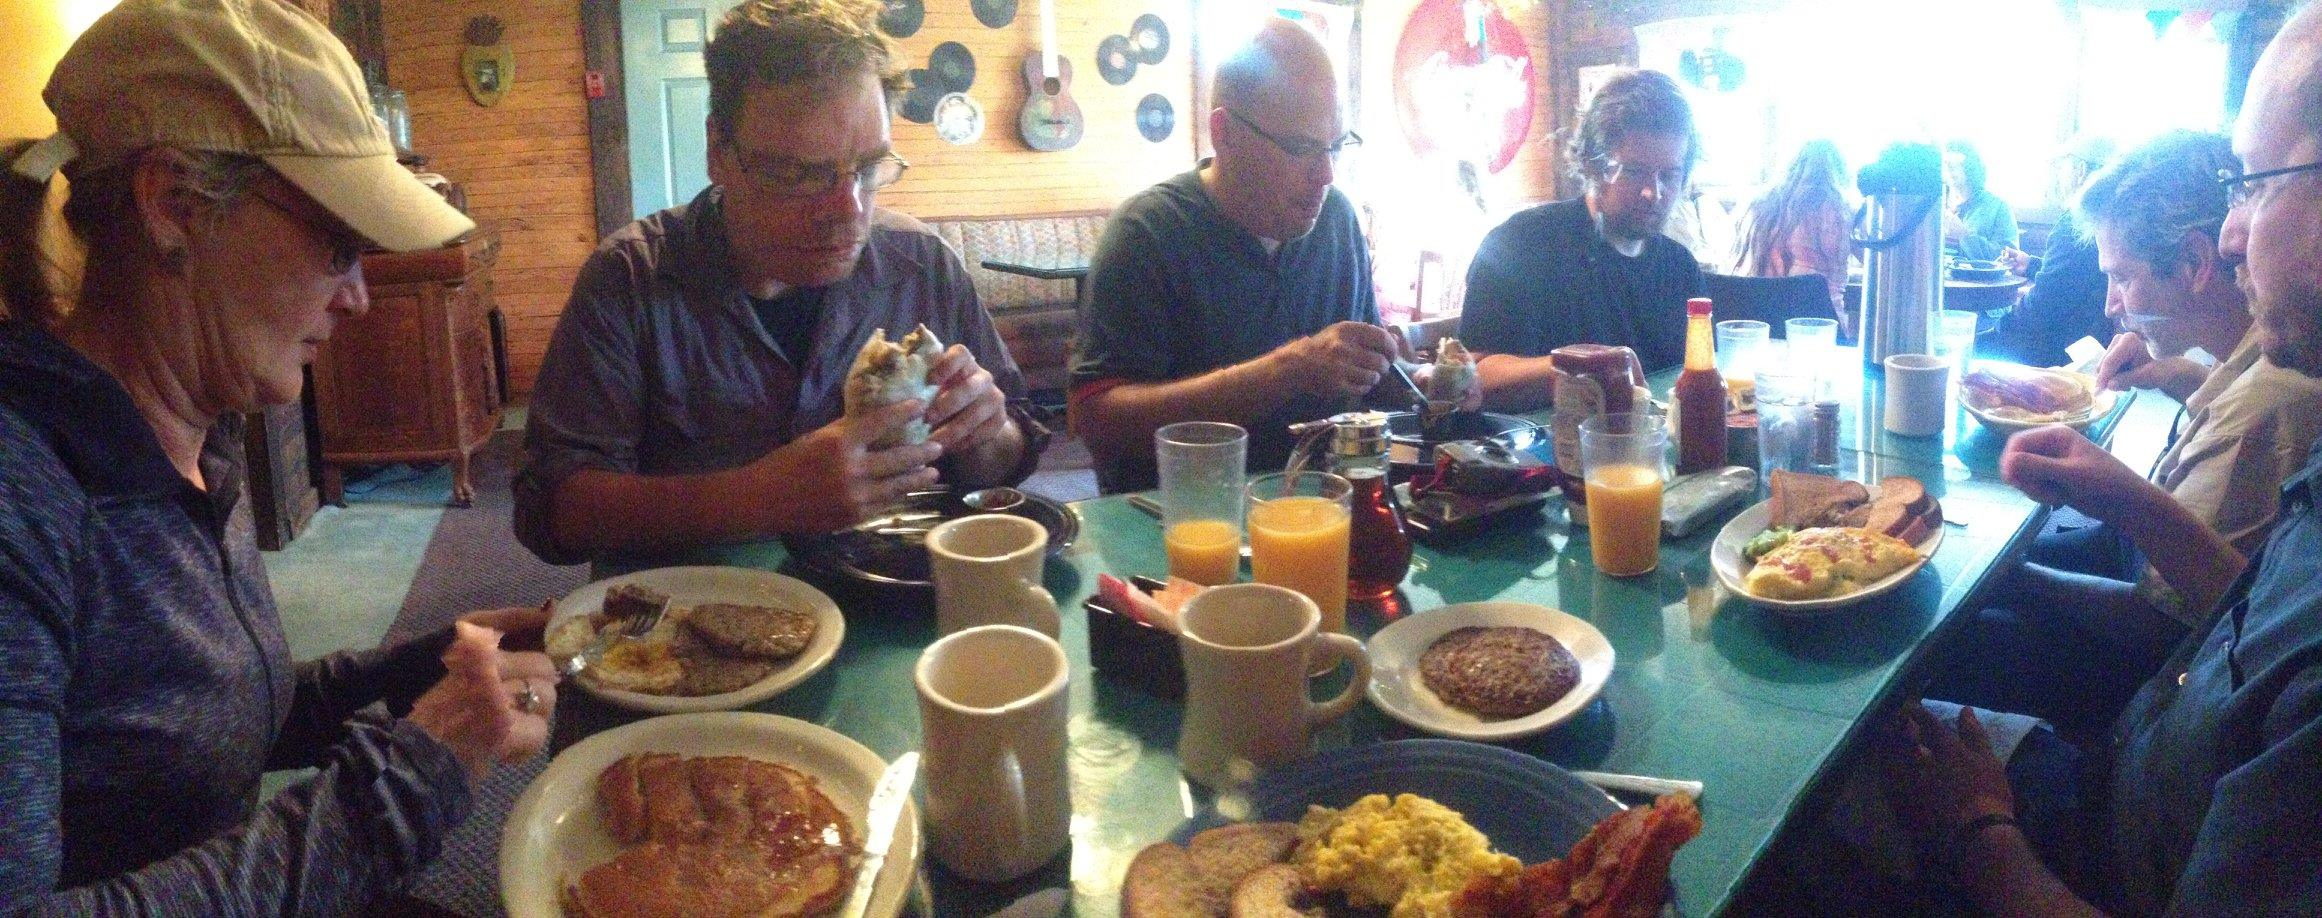 Sometimes a hearty breakfast is called for.